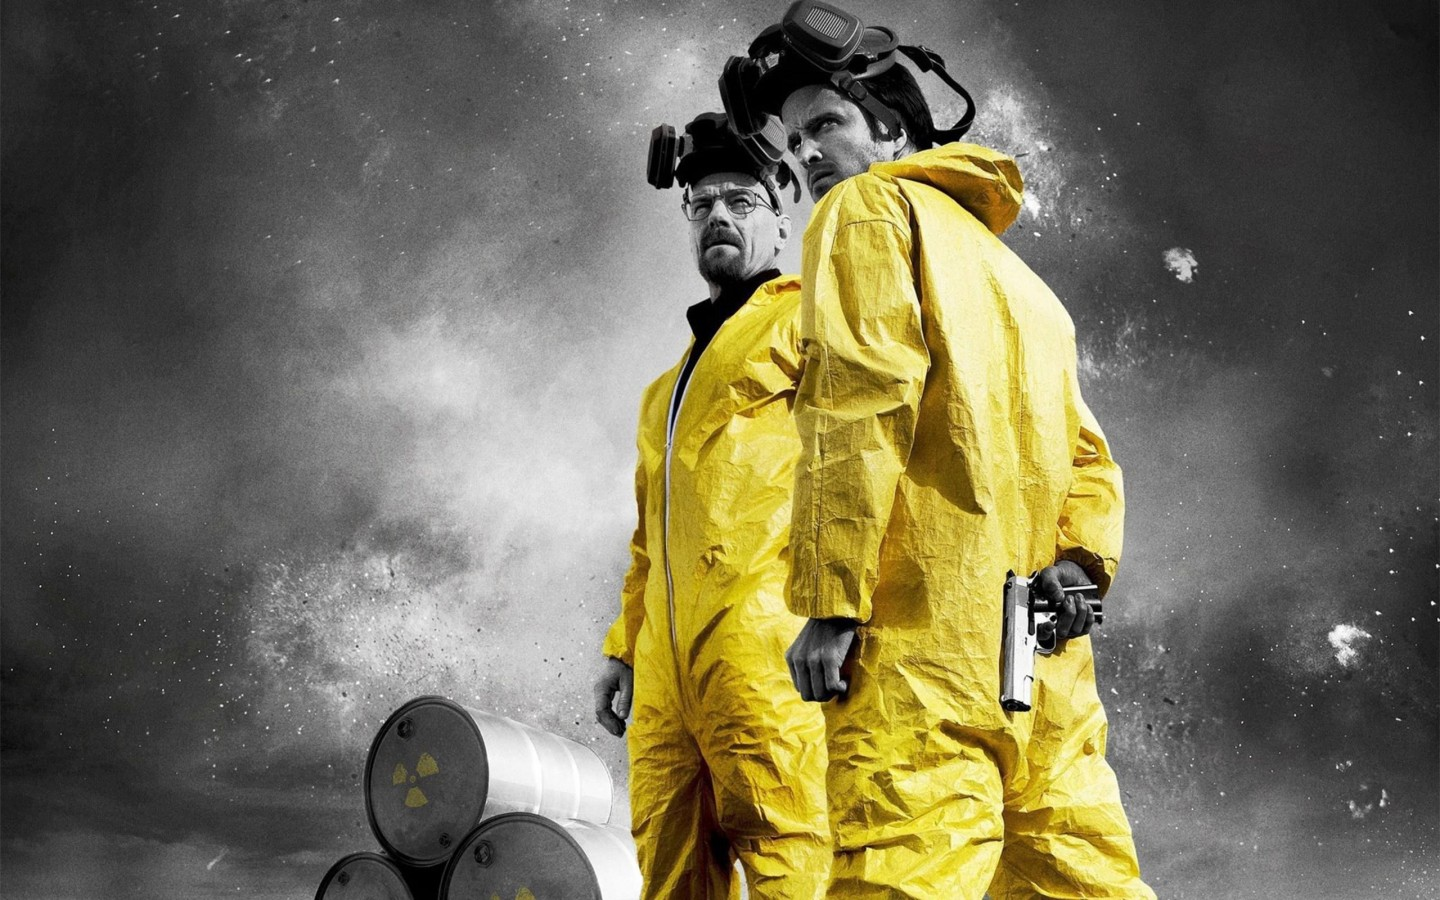 Breaking Bad - Jesse & Walt Wallpaper for Desktop 1440x900